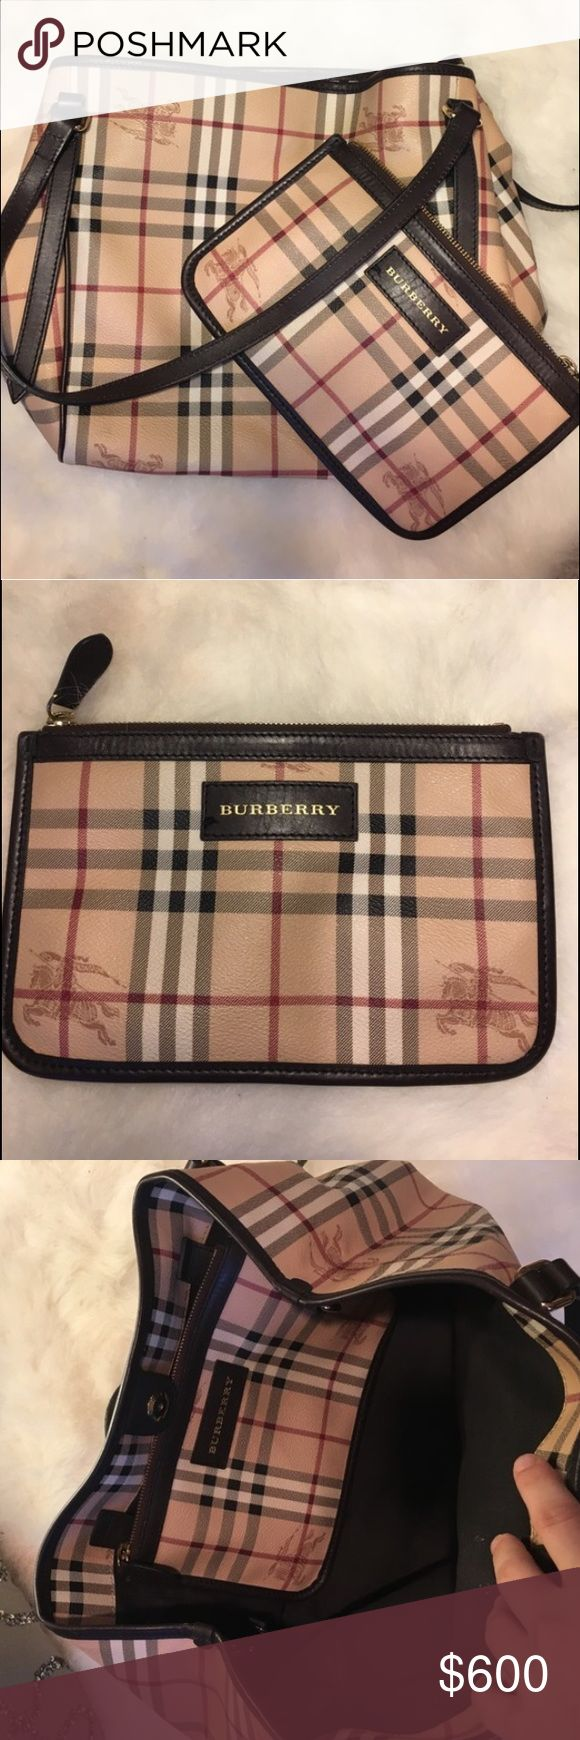 Burberry Tote With Detachable Clutch 100% authentic. Perfect for fall! In great condition. Just a little wear on the bottom leather piping as well as a couple spots on the inside lining and pouch. Only worn a handful of times. Can expand into a wider tote and the clutch has a zipper closer, also removable. (Crossposted with Chicinlove's closet). Burberry Bags Totes